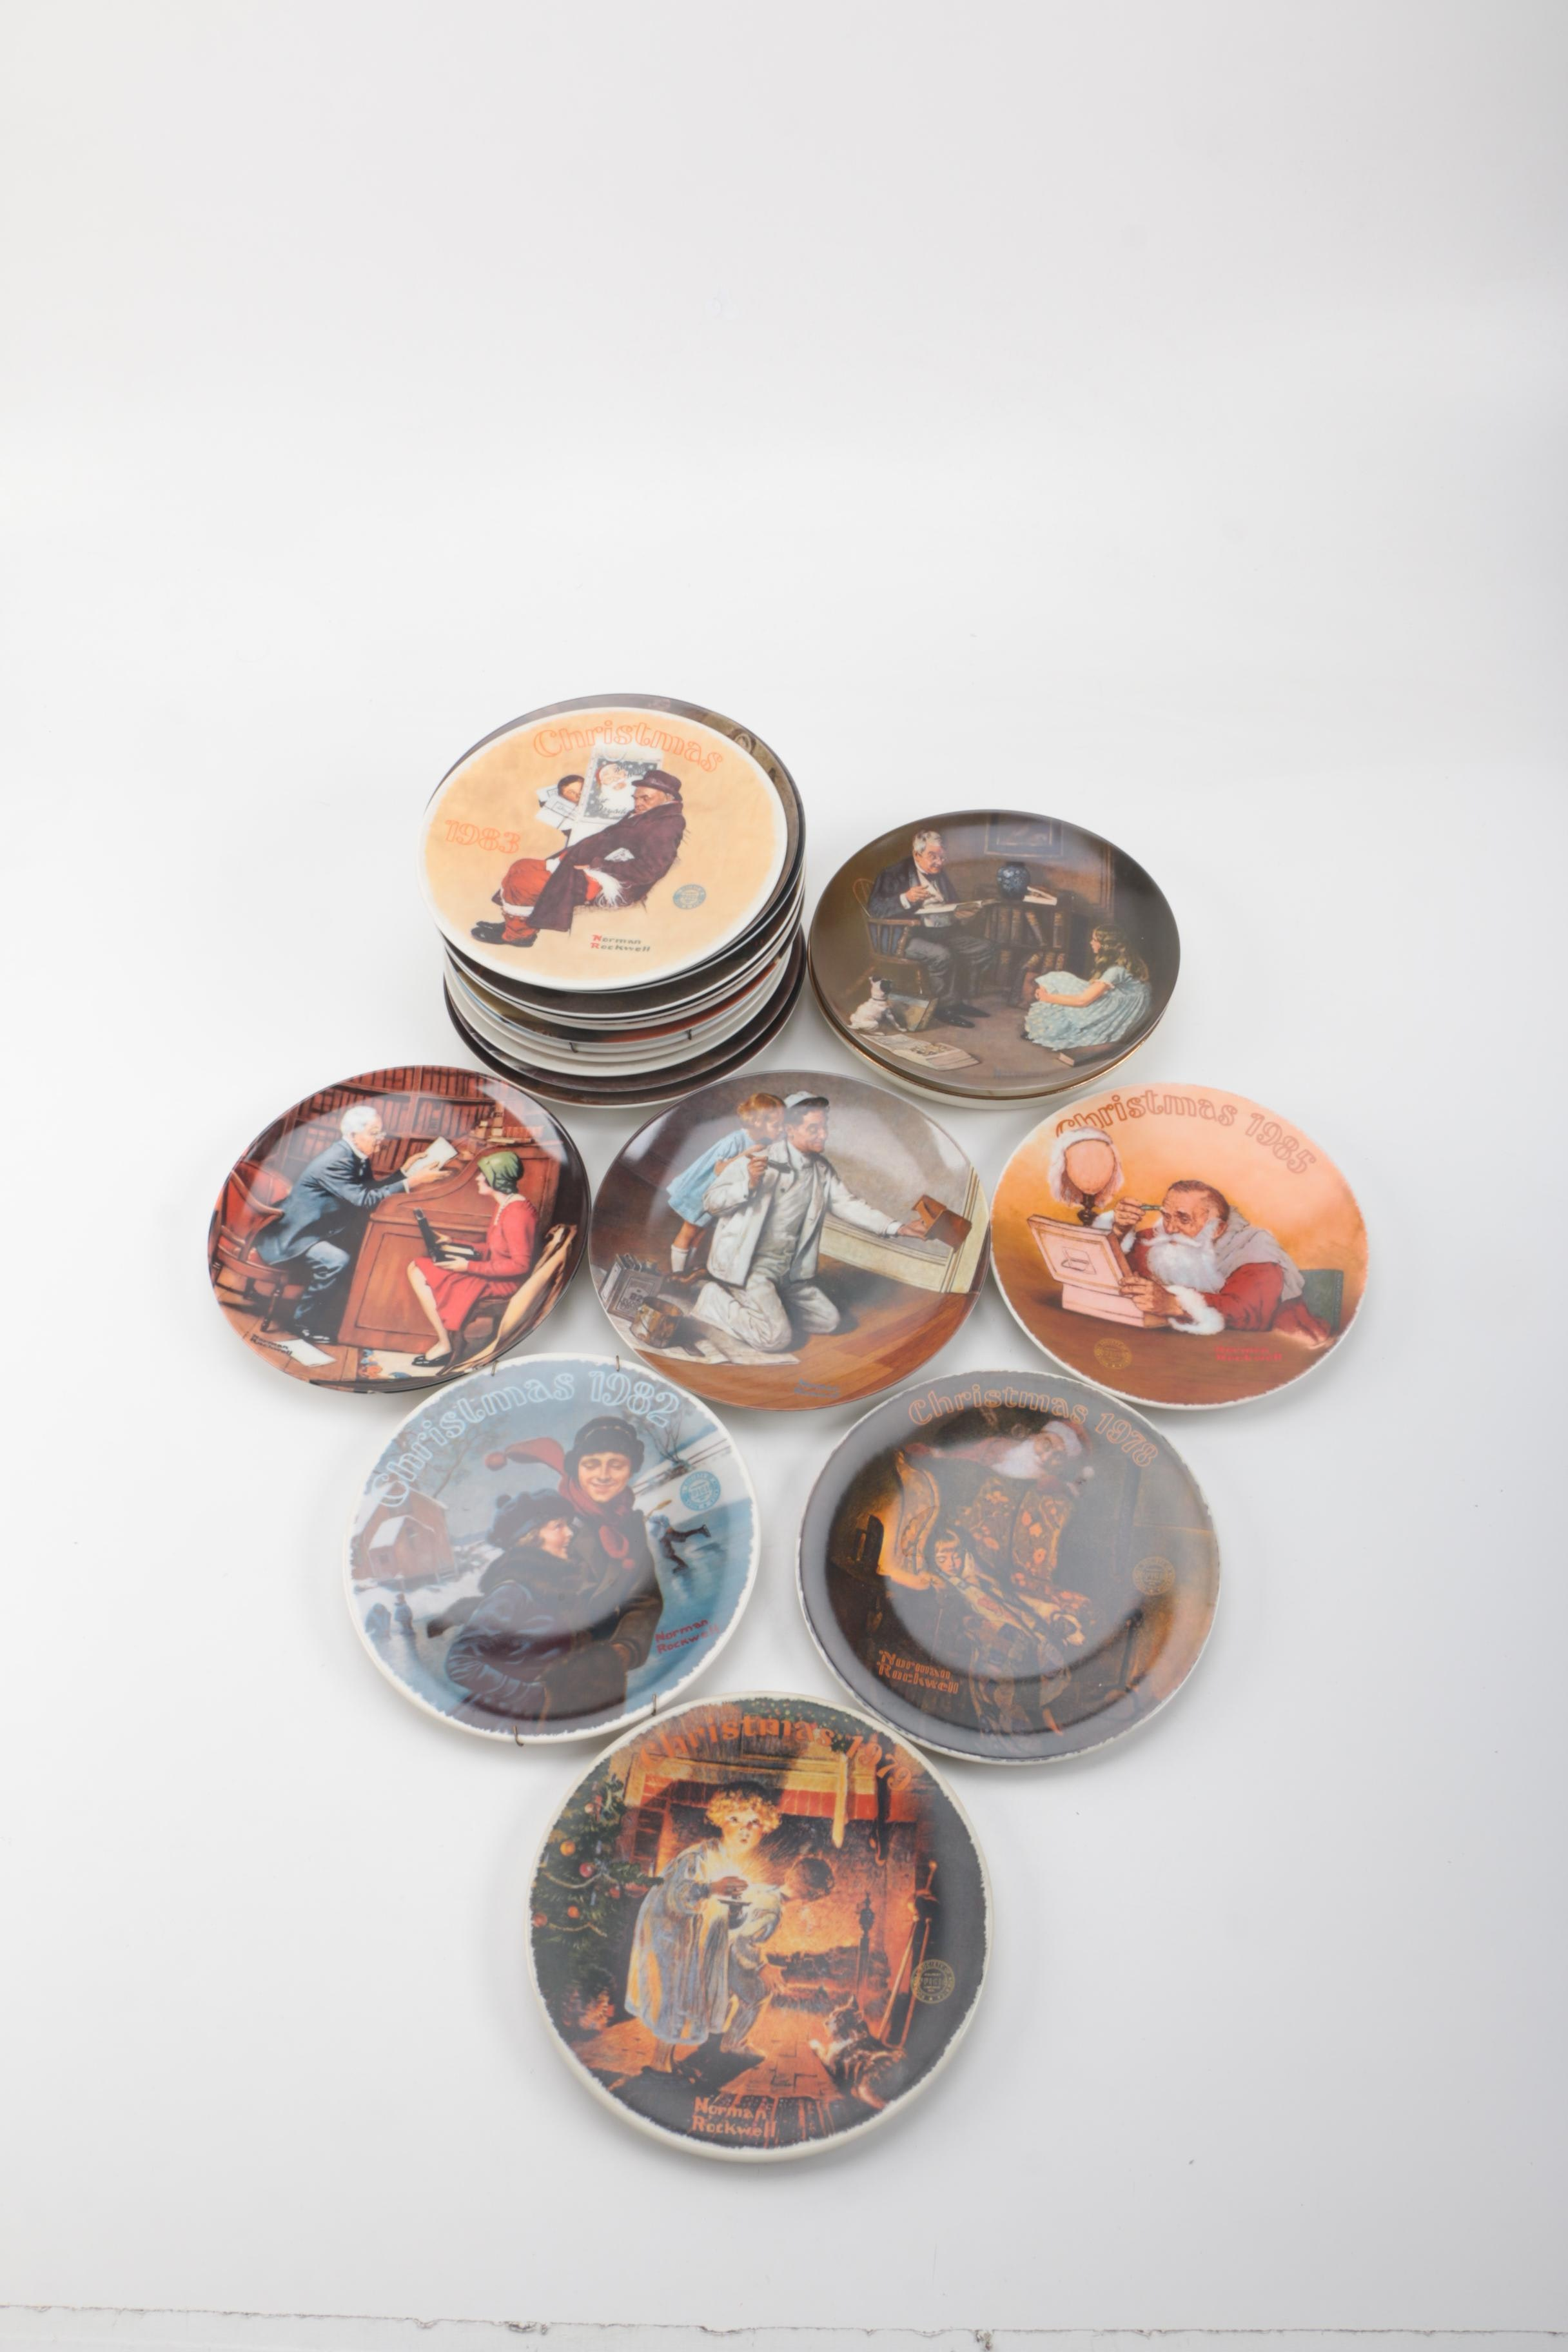 Norman Rockwell Limited Edition Collector Plates